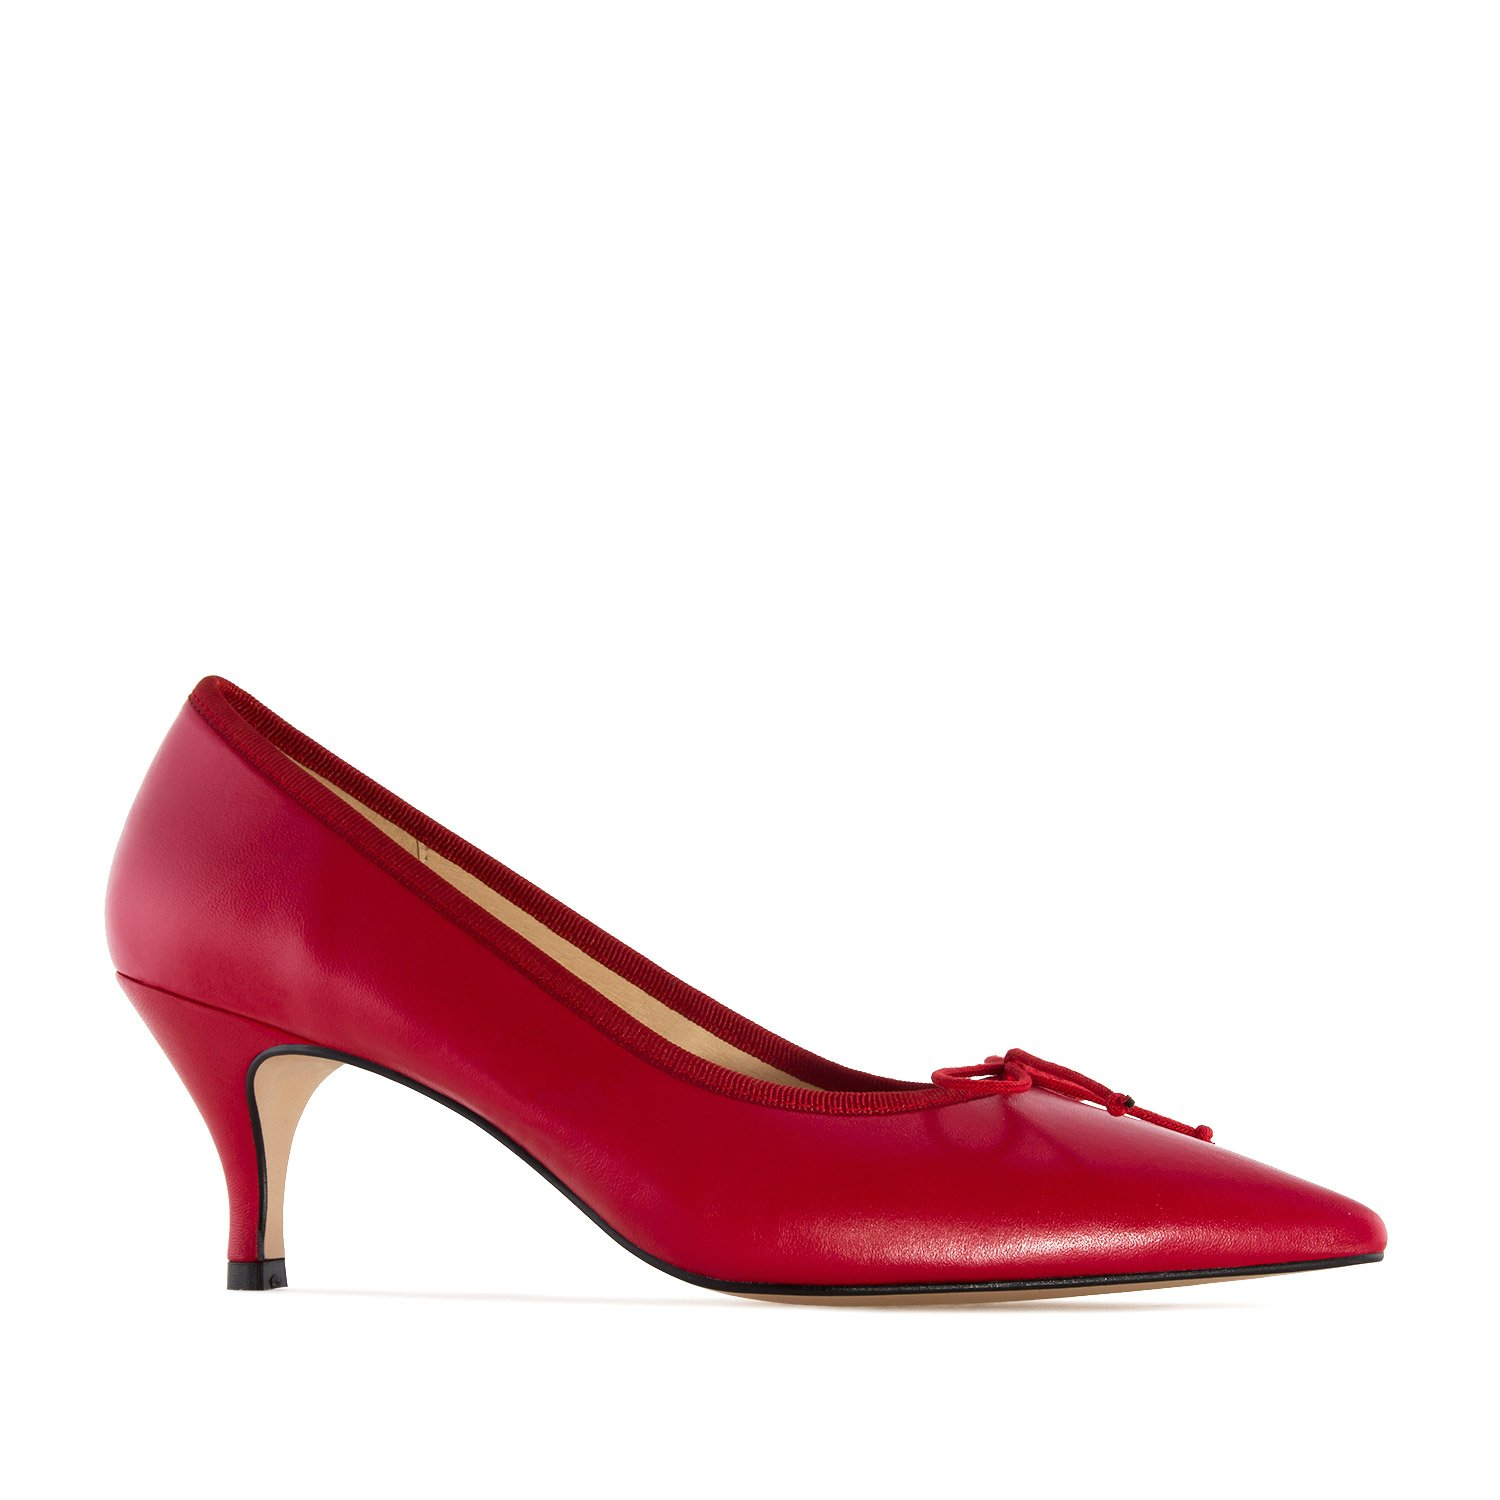 Andres Machado Fine Tip Red Leather Heeled Shoes, 35 M EU/5 B (M) US